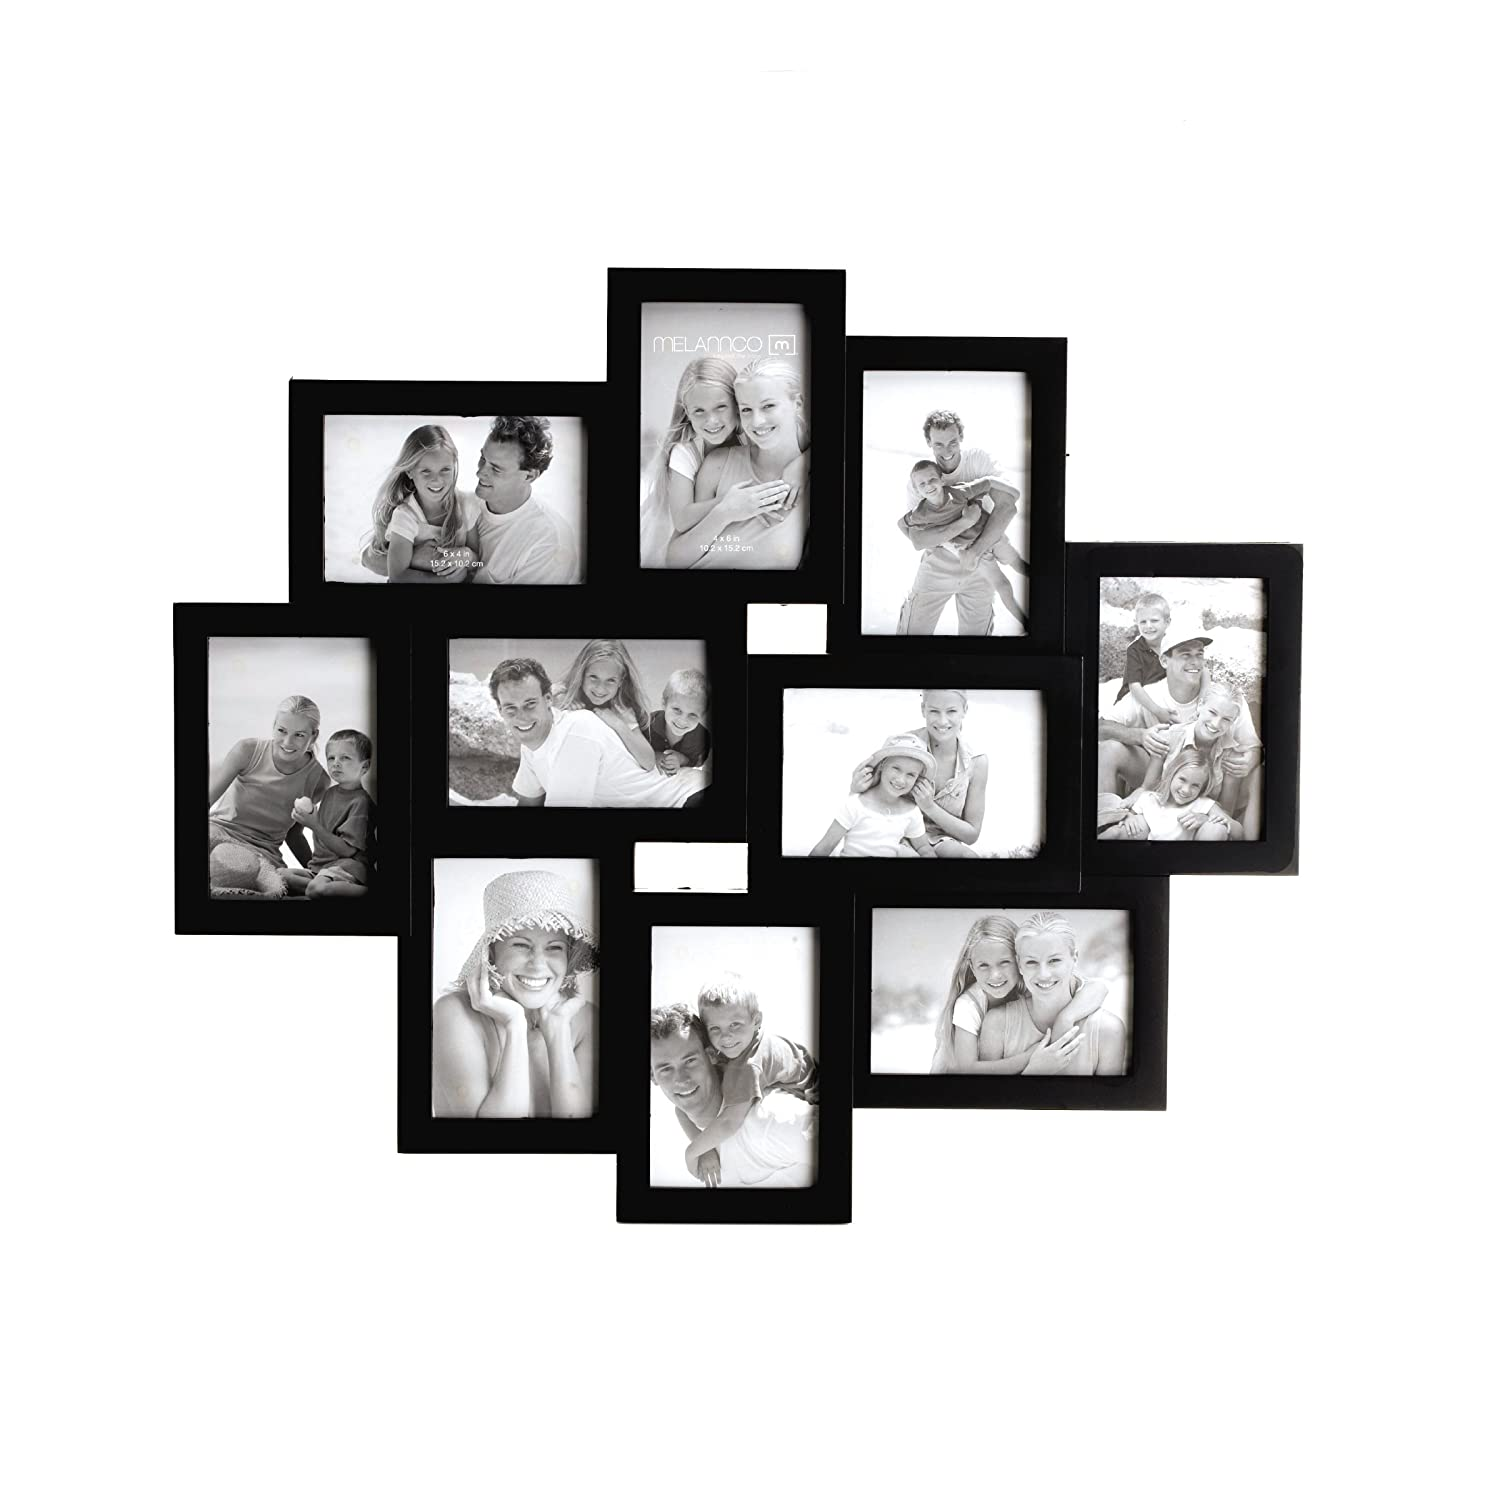 Amazon.com - Melannco Ten Opening Wall Frame - Picture Frame Sets